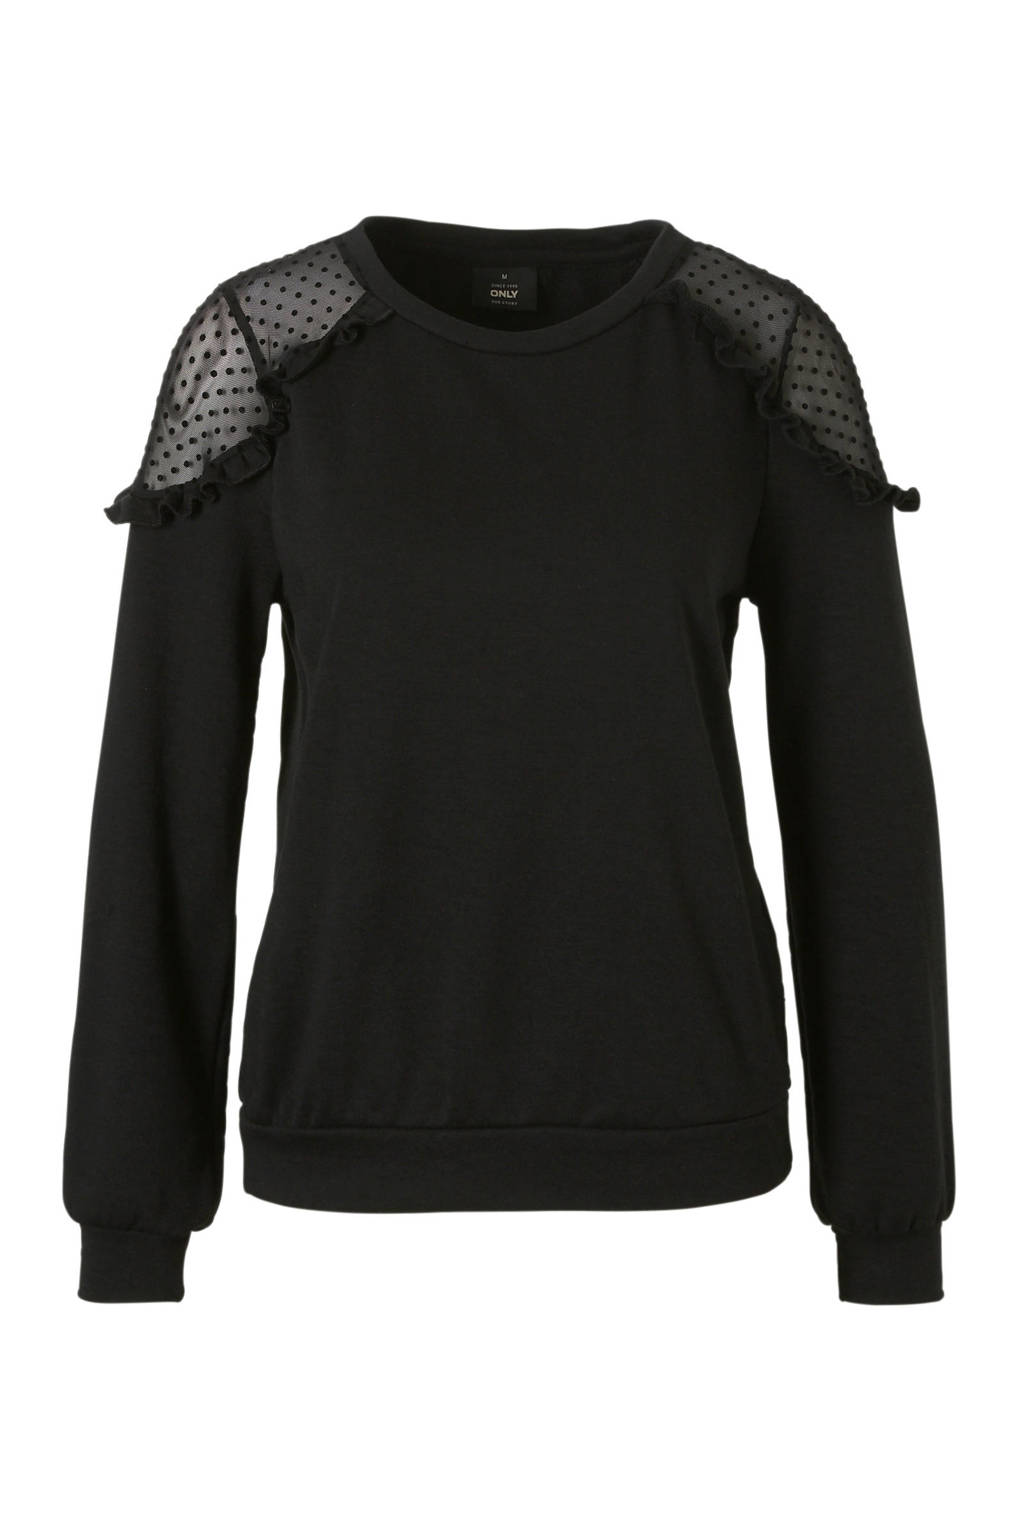 ONLY sweater met ruches en mesh, Zwart